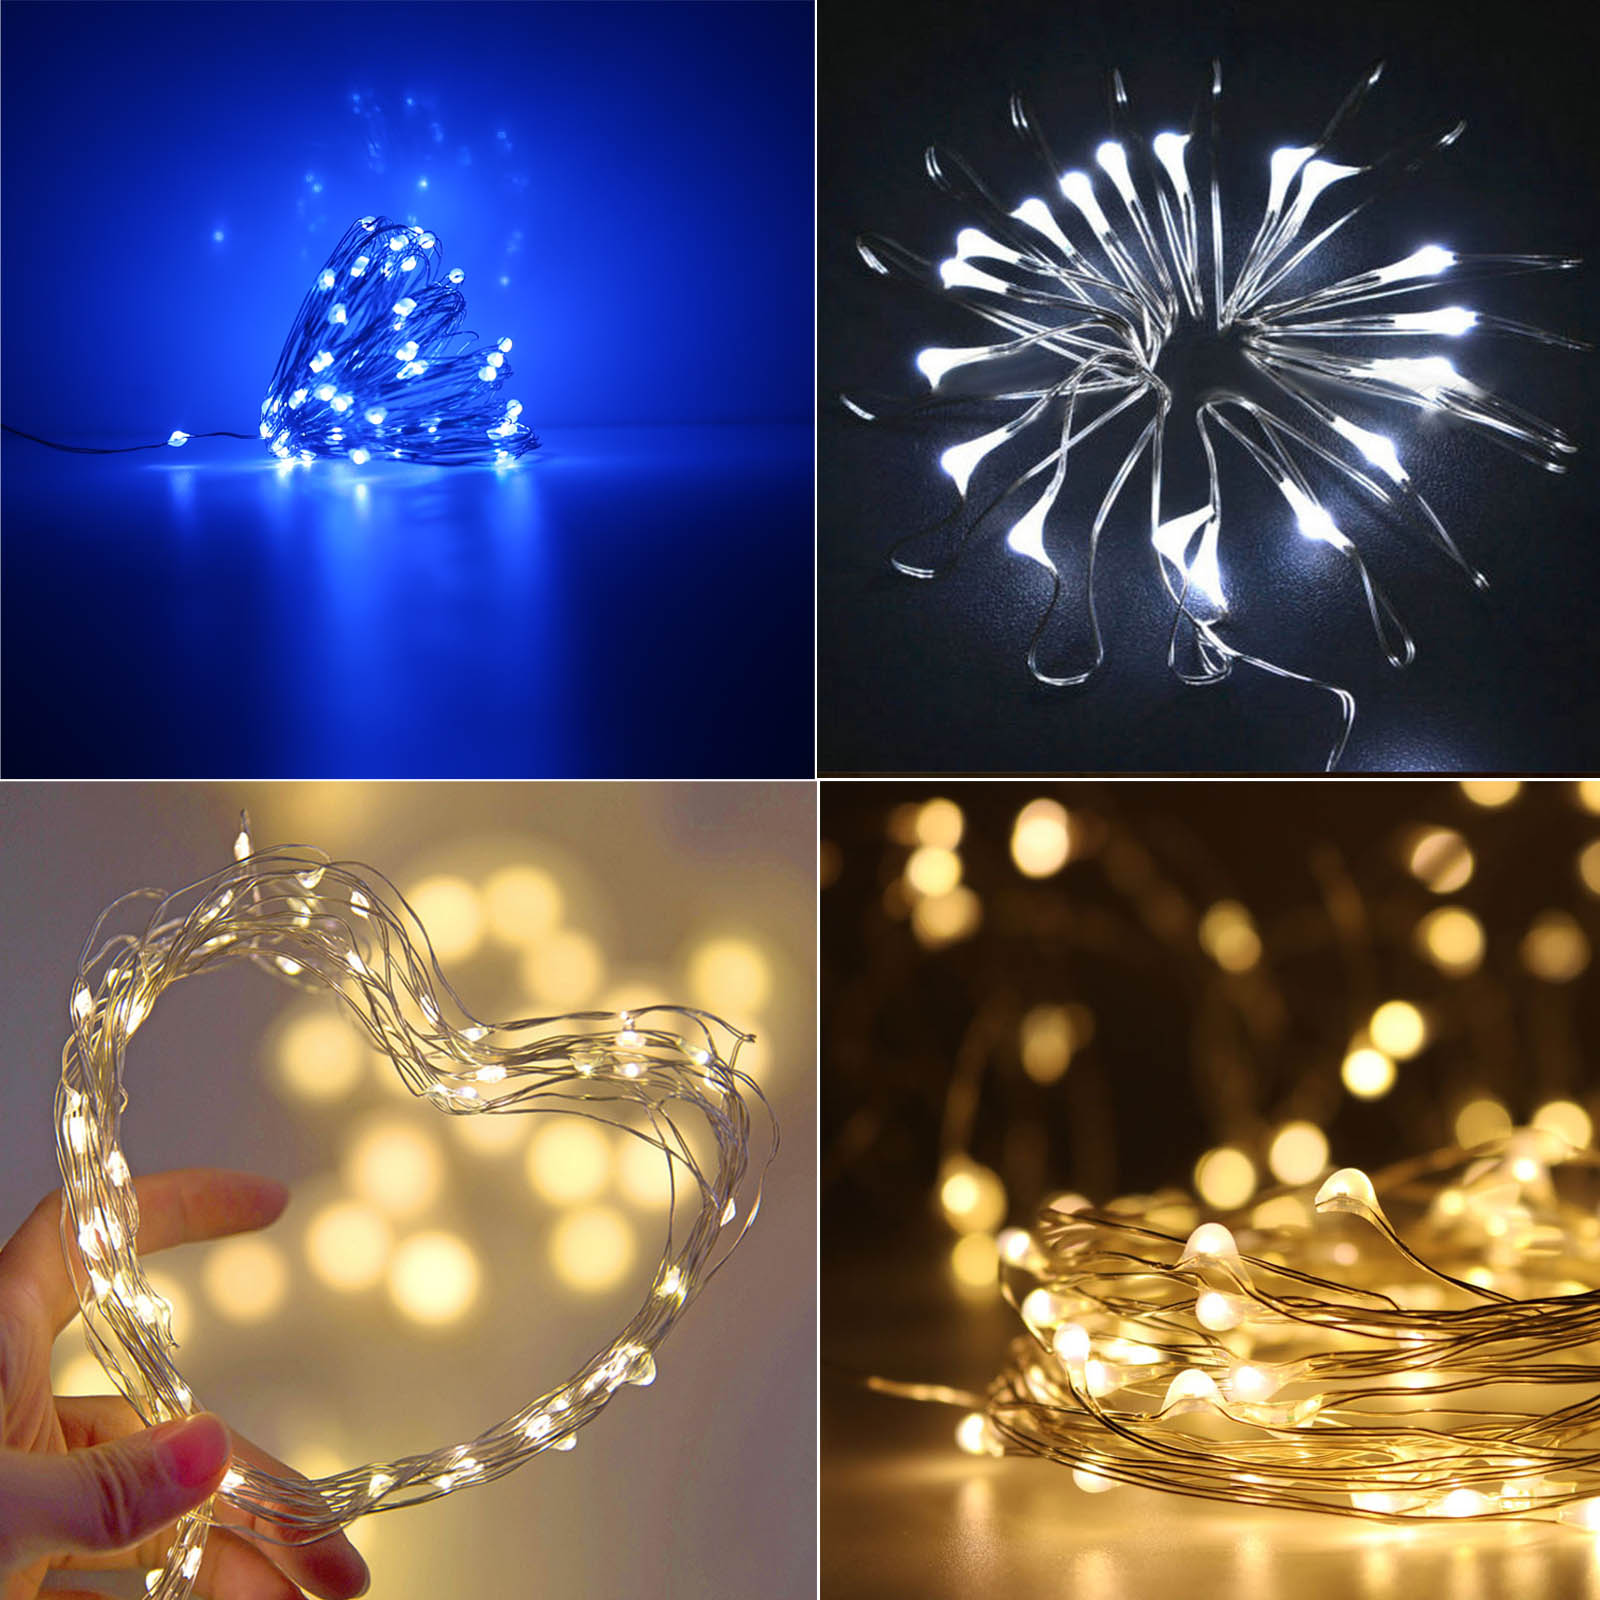 LED Copper Wire String Fairy Light 10M 5M 3M 2M 1M Garland Home Xmas Wedding Party Decor Powered By Battery USB LR44 CR2032 New